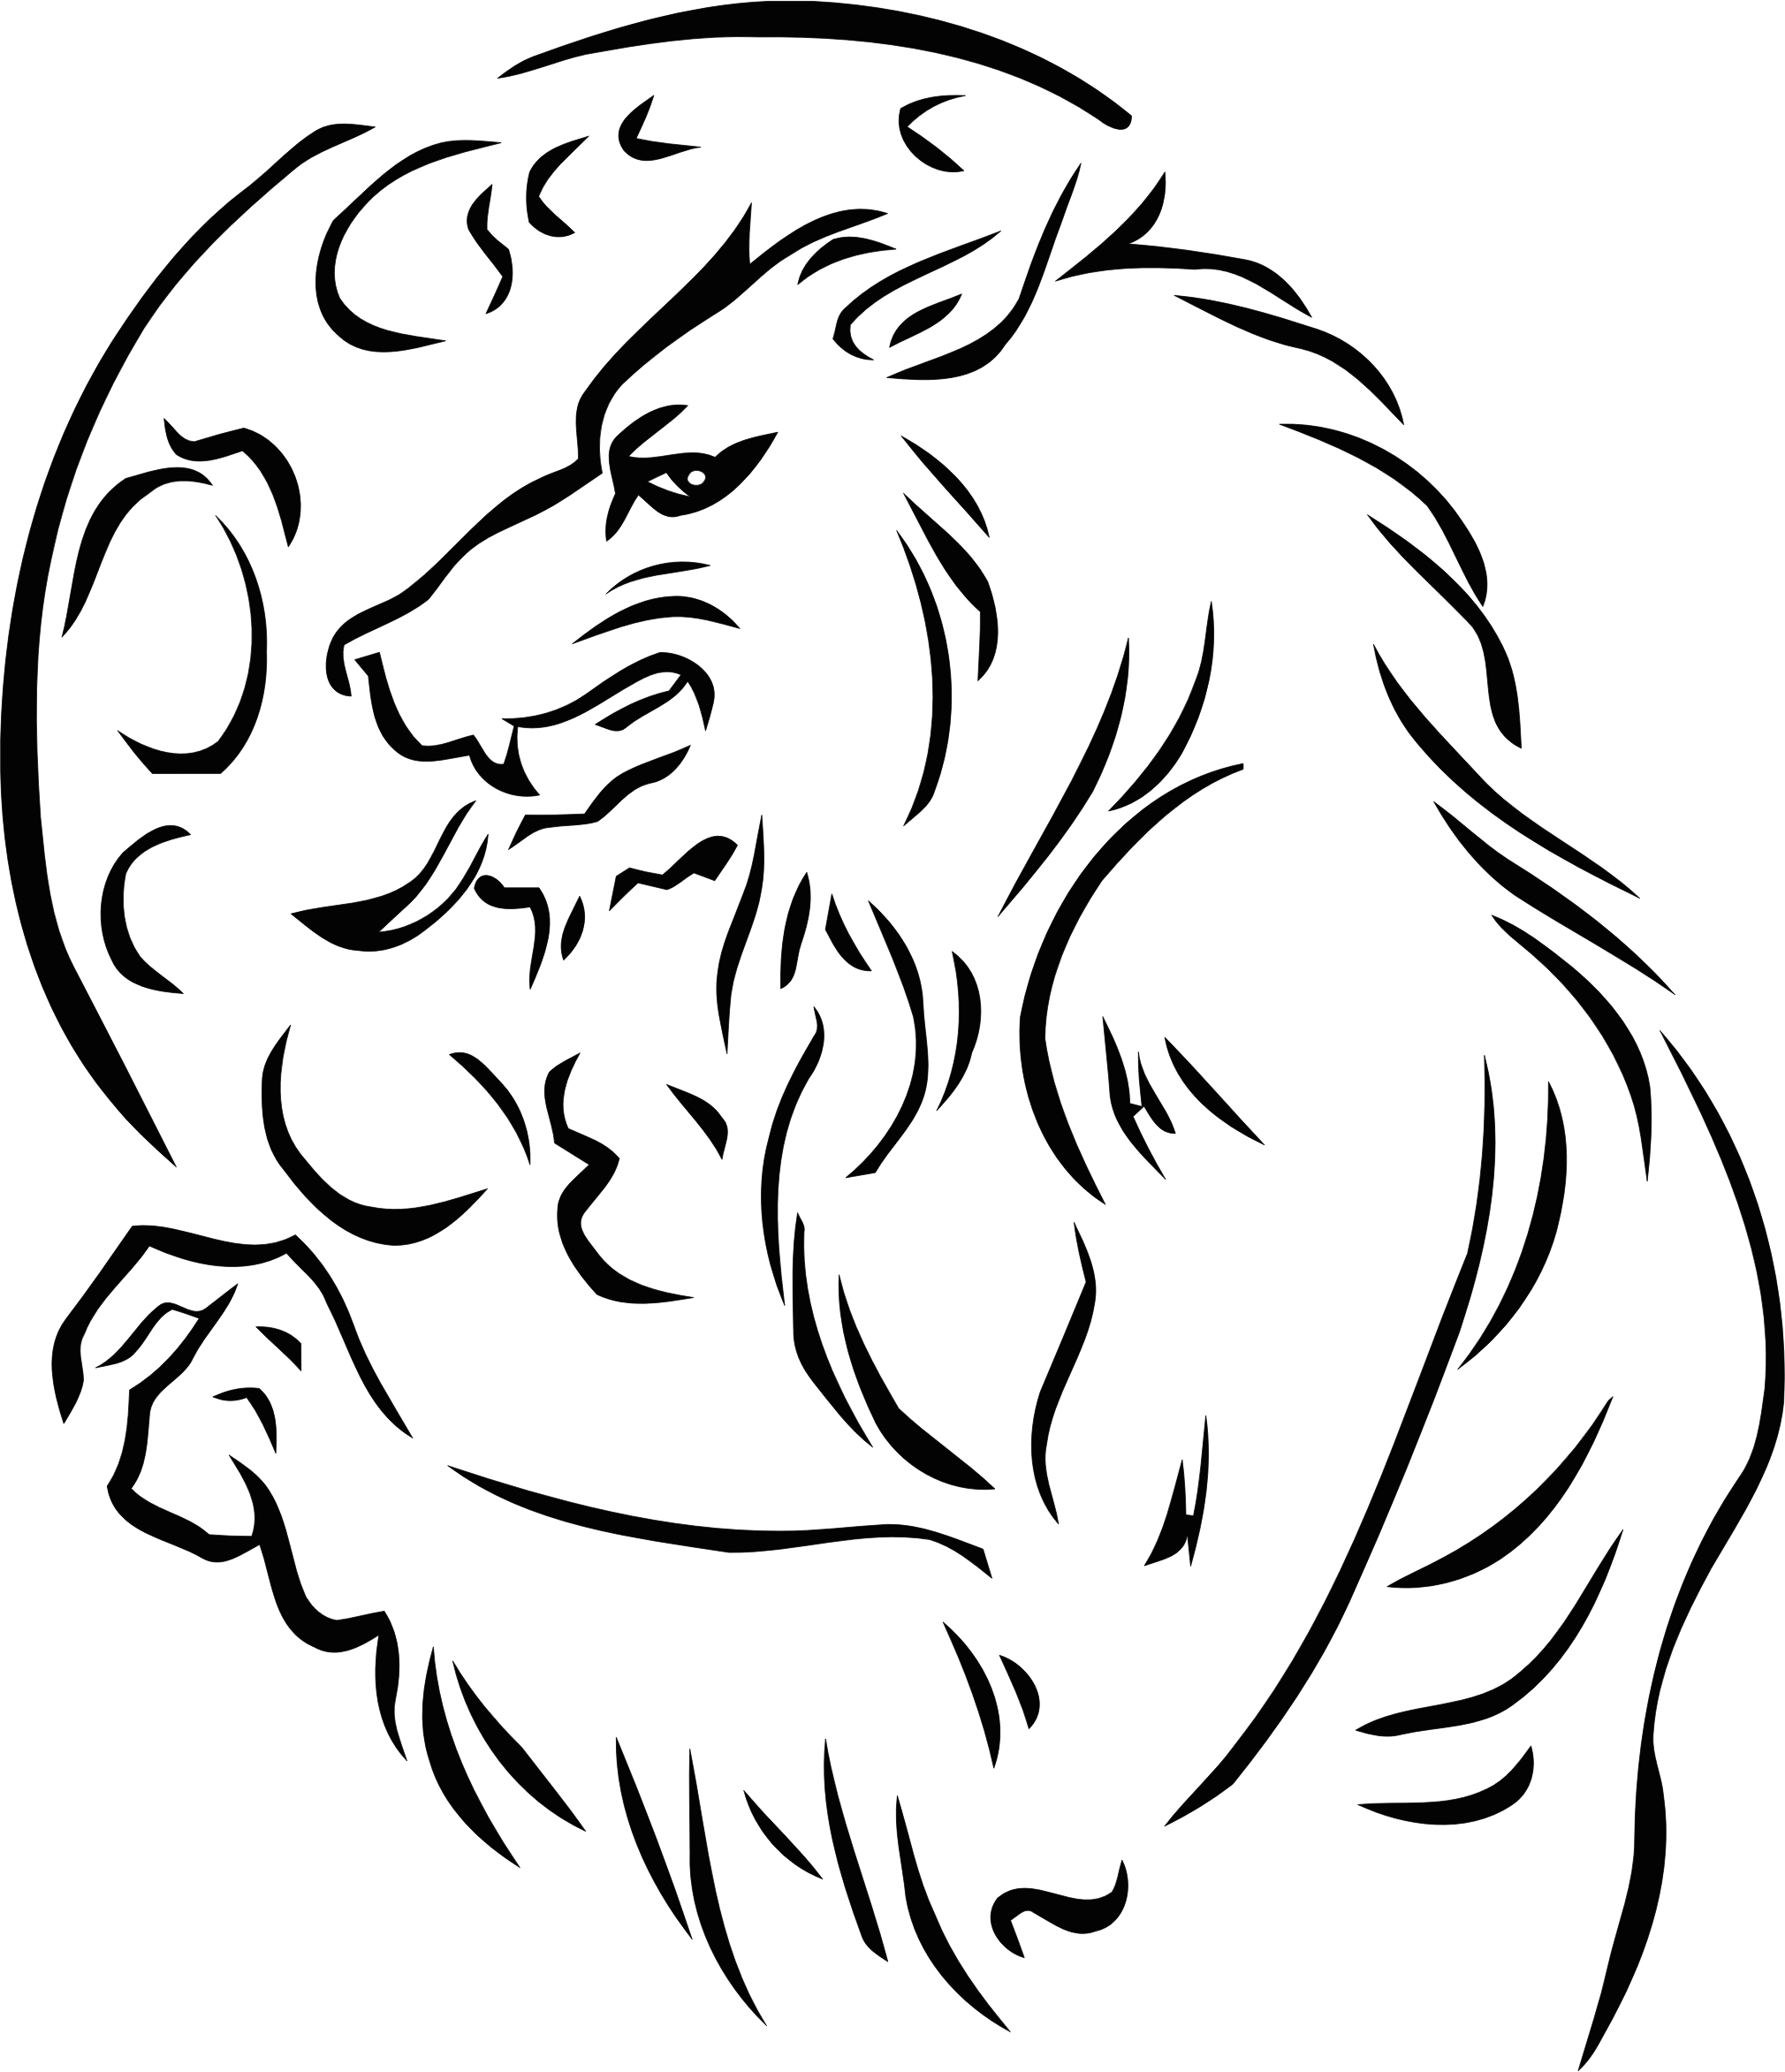 svg free stock Werewolf clipart black and white. Big image png